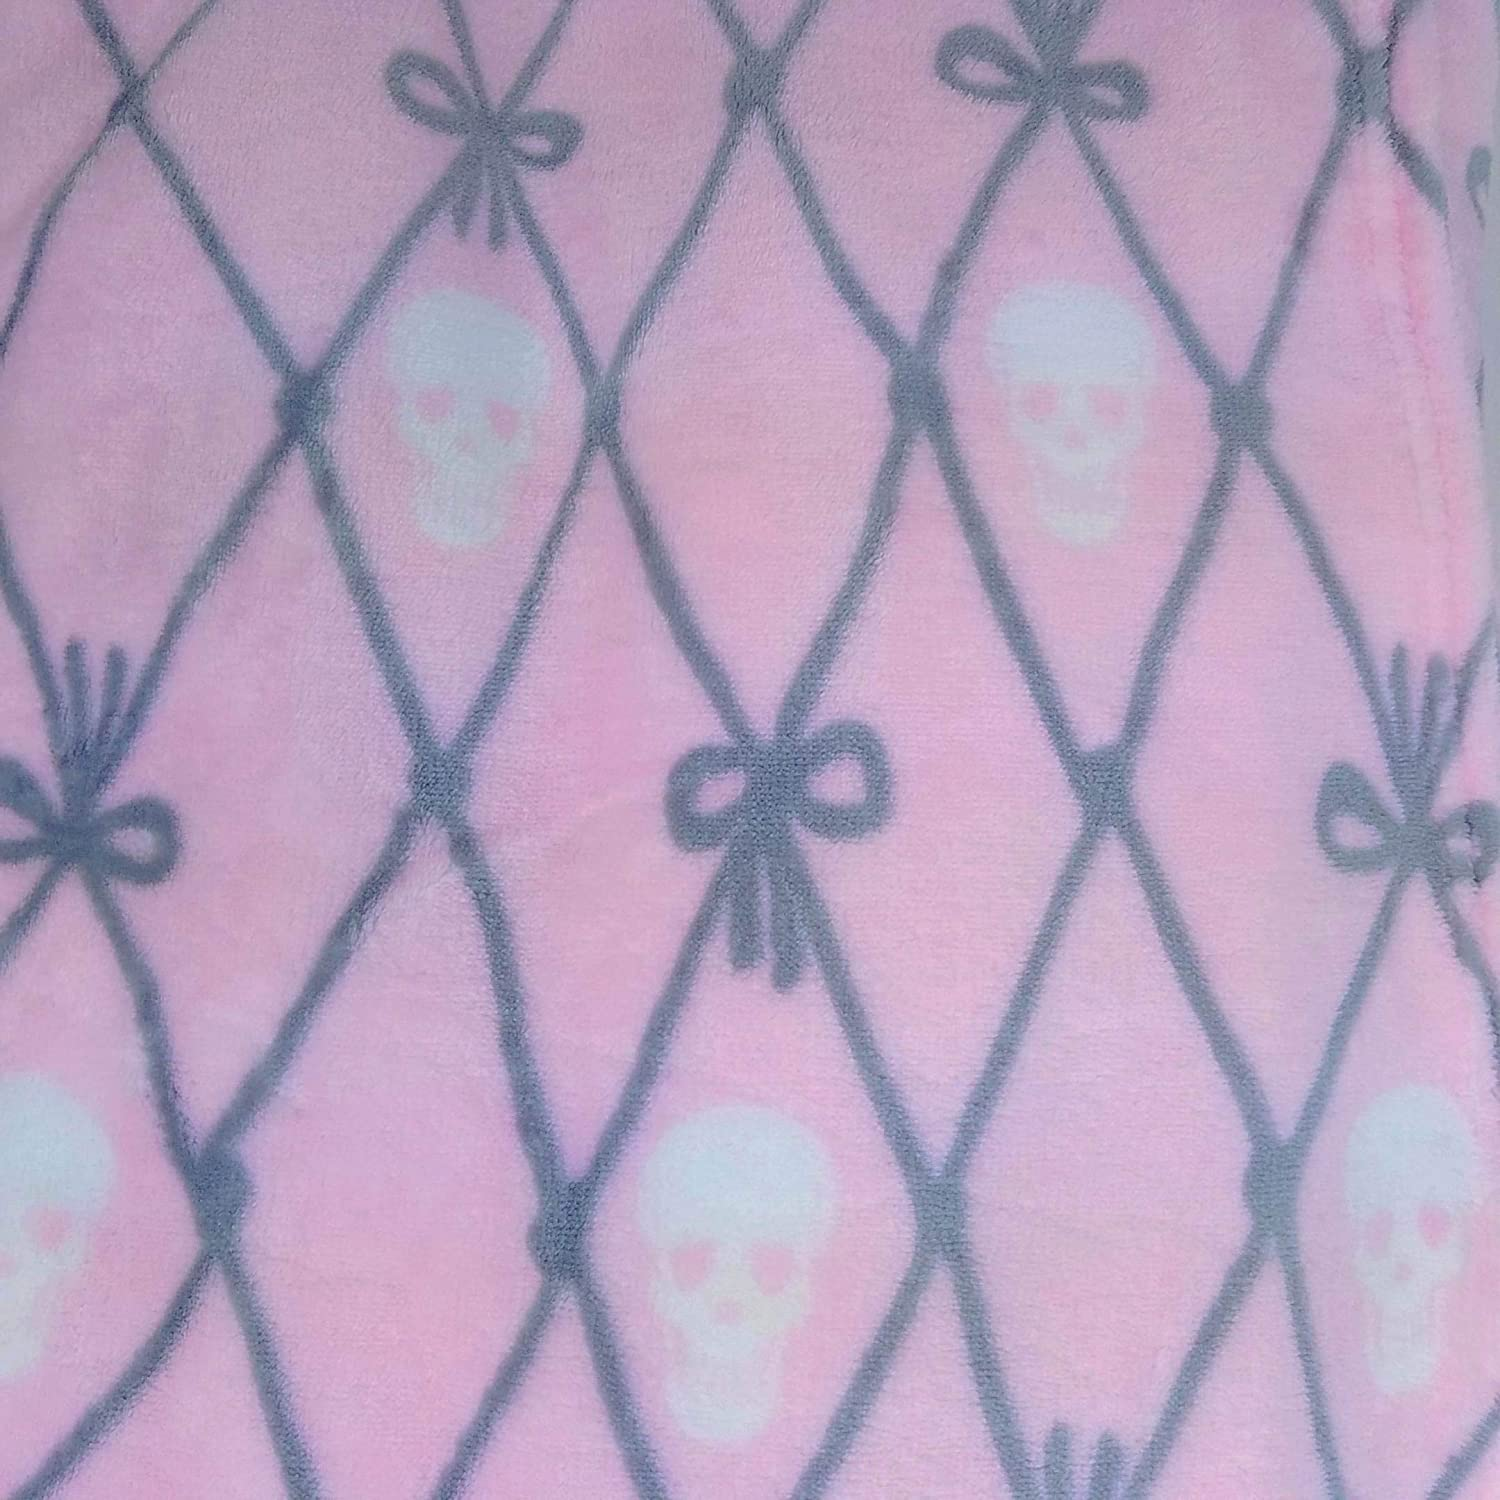 REVMAN Twin Size Pink /& Gray Bow Ties and Skulls Print Ultra Soft Plush Large Bed Blanket by Betsey Johnson